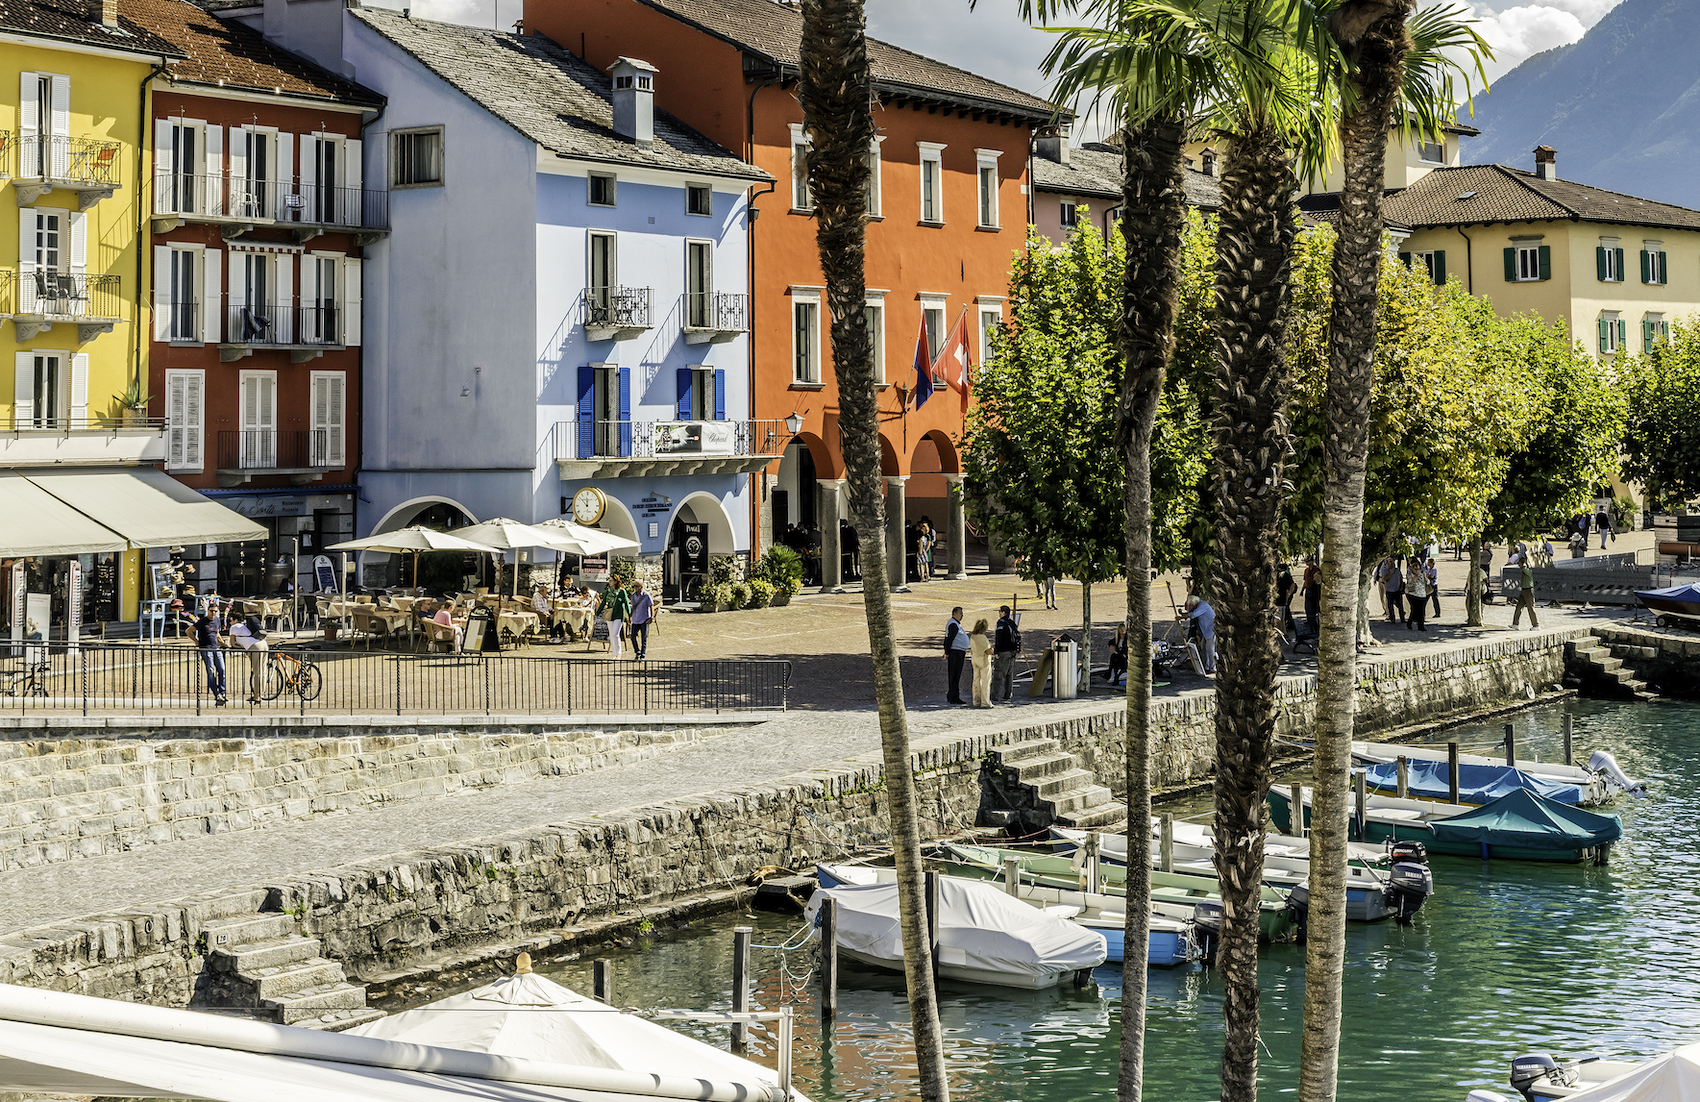 Get to know Ascona-Locarno in 2019 with our comprehensive guide